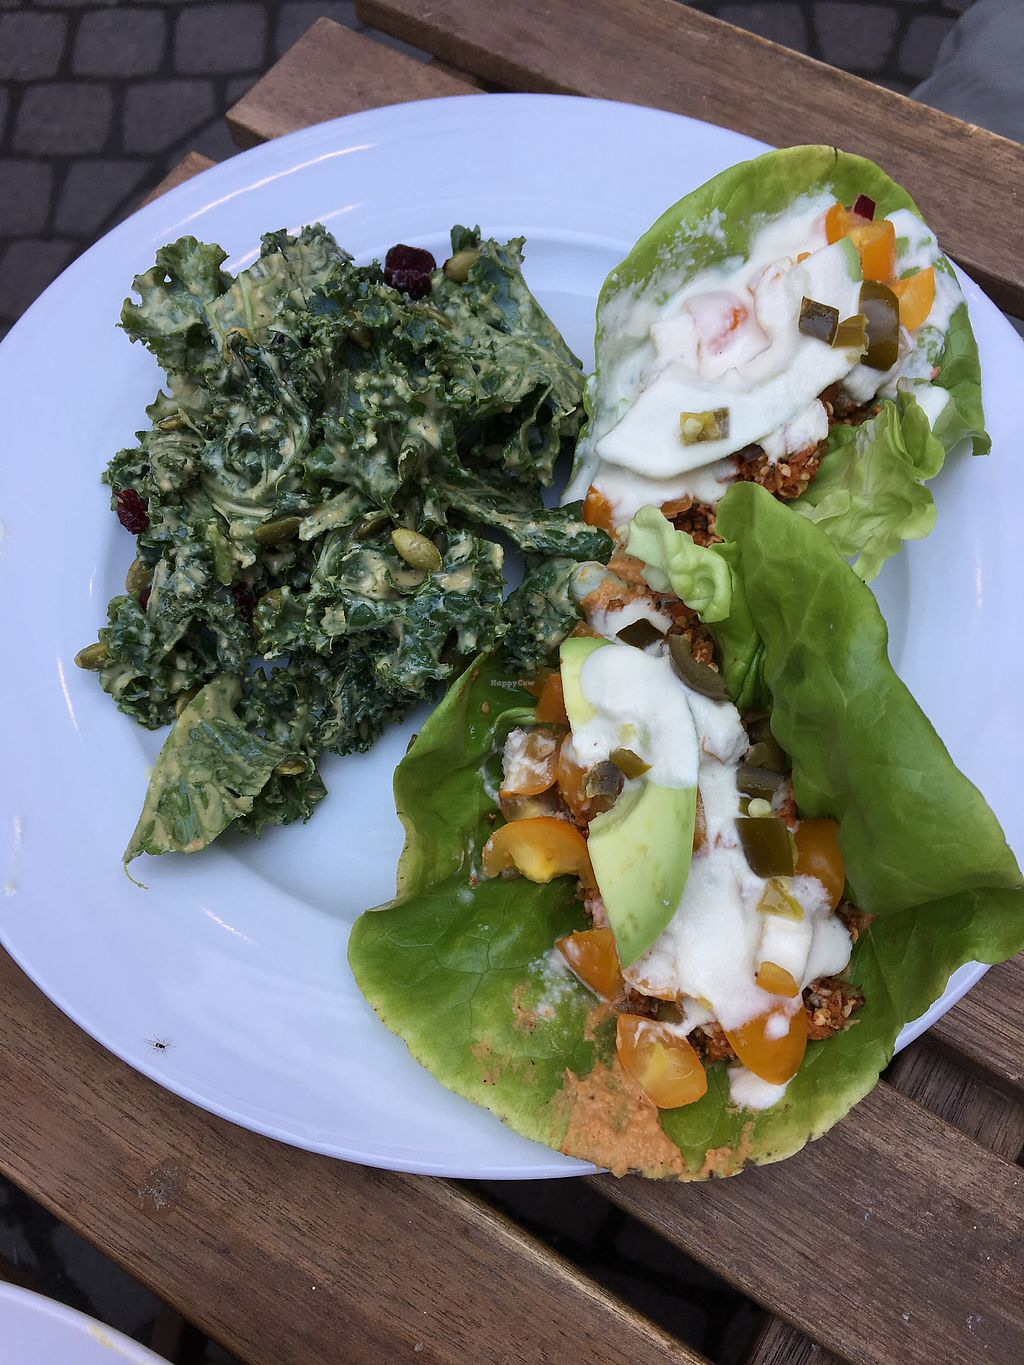 """Photo of Raw Eatery & Market  by <a href=""""/members/profile/dlachica"""">dlachica</a> <br/>mary kale salad and tacos <br/> September 3, 2017  - <a href='/contact/abuse/image/78776/300548'>Report</a>"""